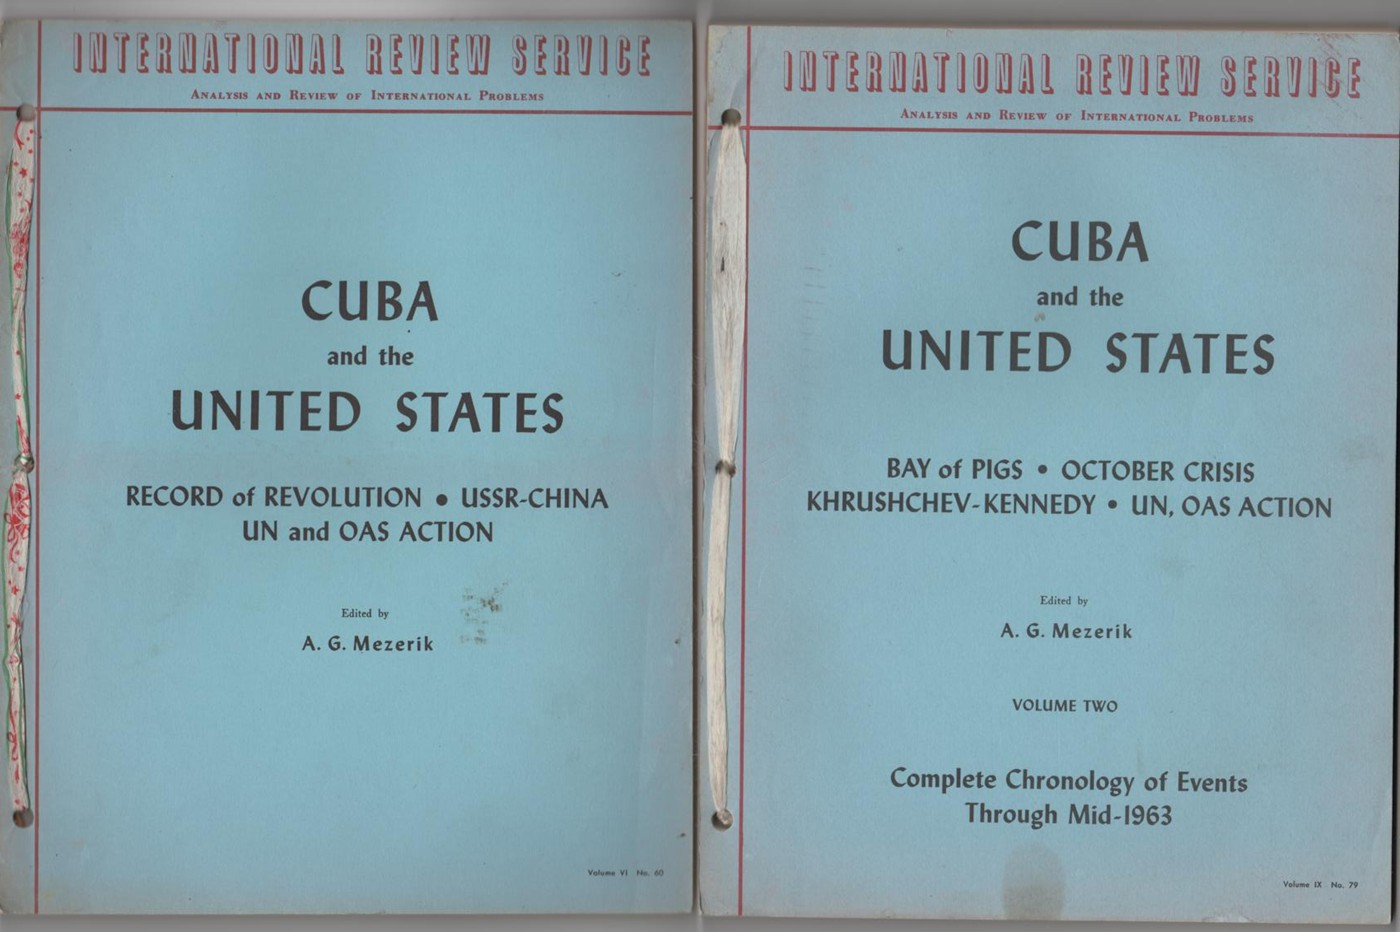 Image for Cuba and the United States (2 Volumes)  Vol 1. Record of Revolution, Ussr-China, UN and OAS Action; Vol 2. Bay of Pigs, October Crisis, Kruschev - Kennedy, UN OAS Action